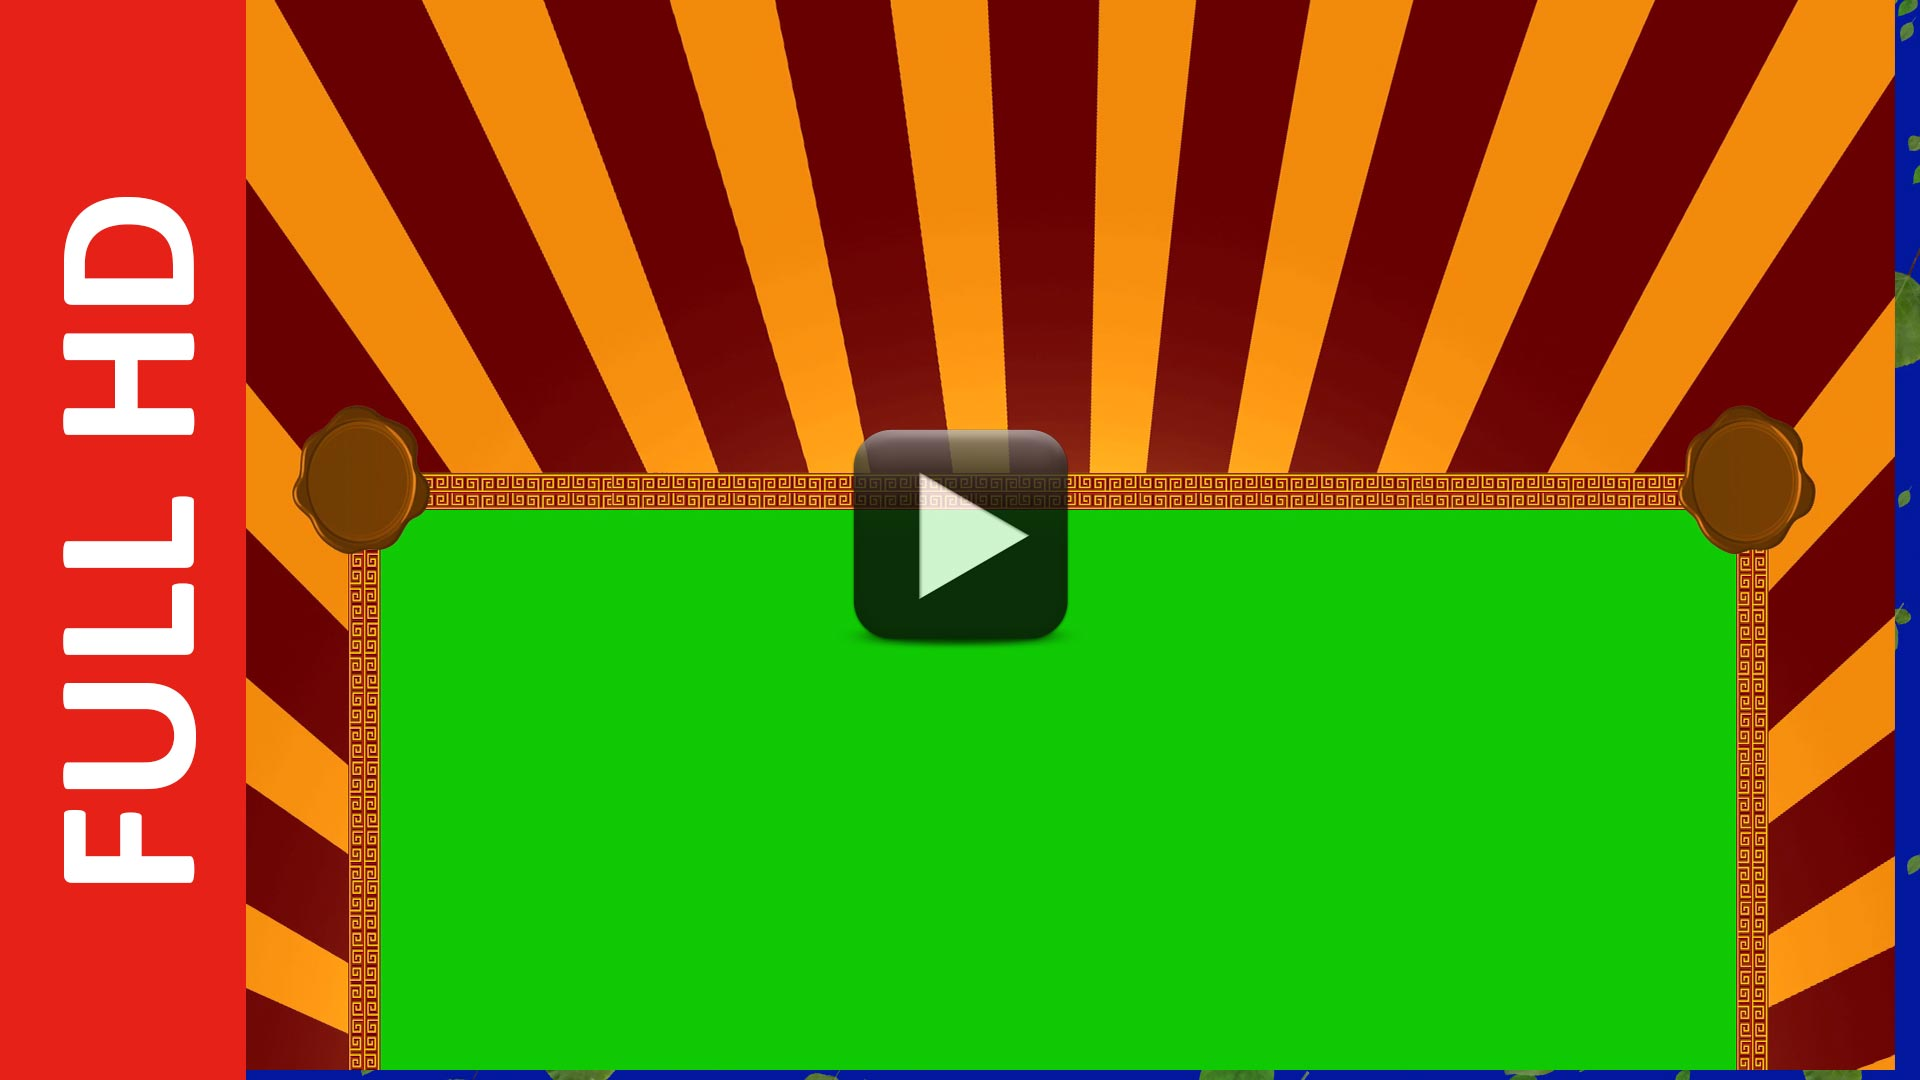 Happy Title Motion Green Screen Background Video Effect